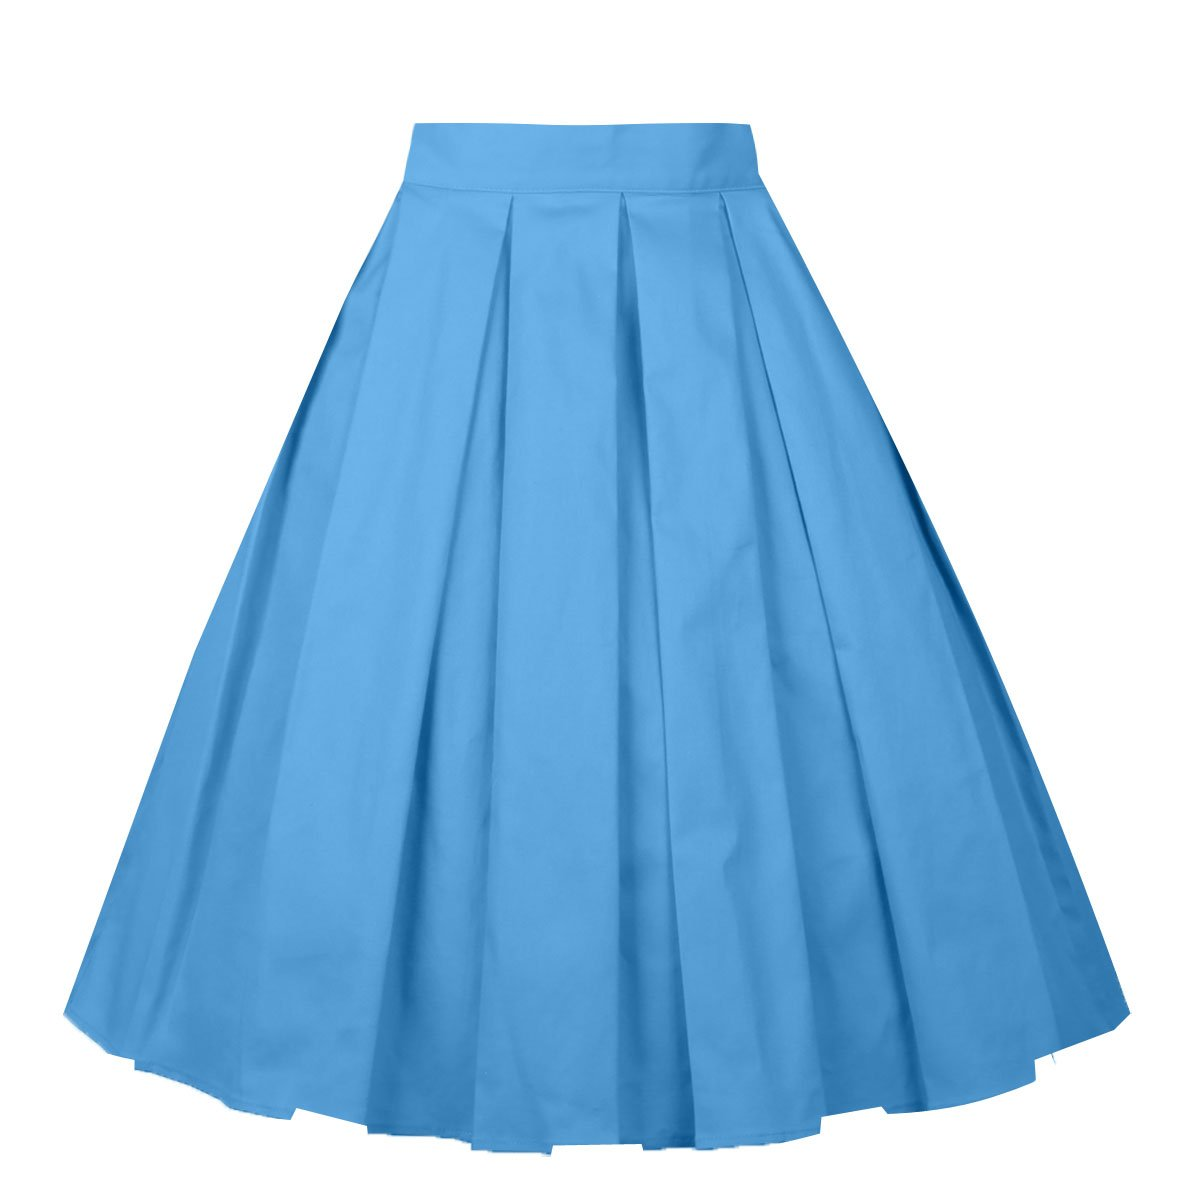 Girstunm Women's Pleated Vintage Skirt Floral Print A-line Midi Skirts with Pockets